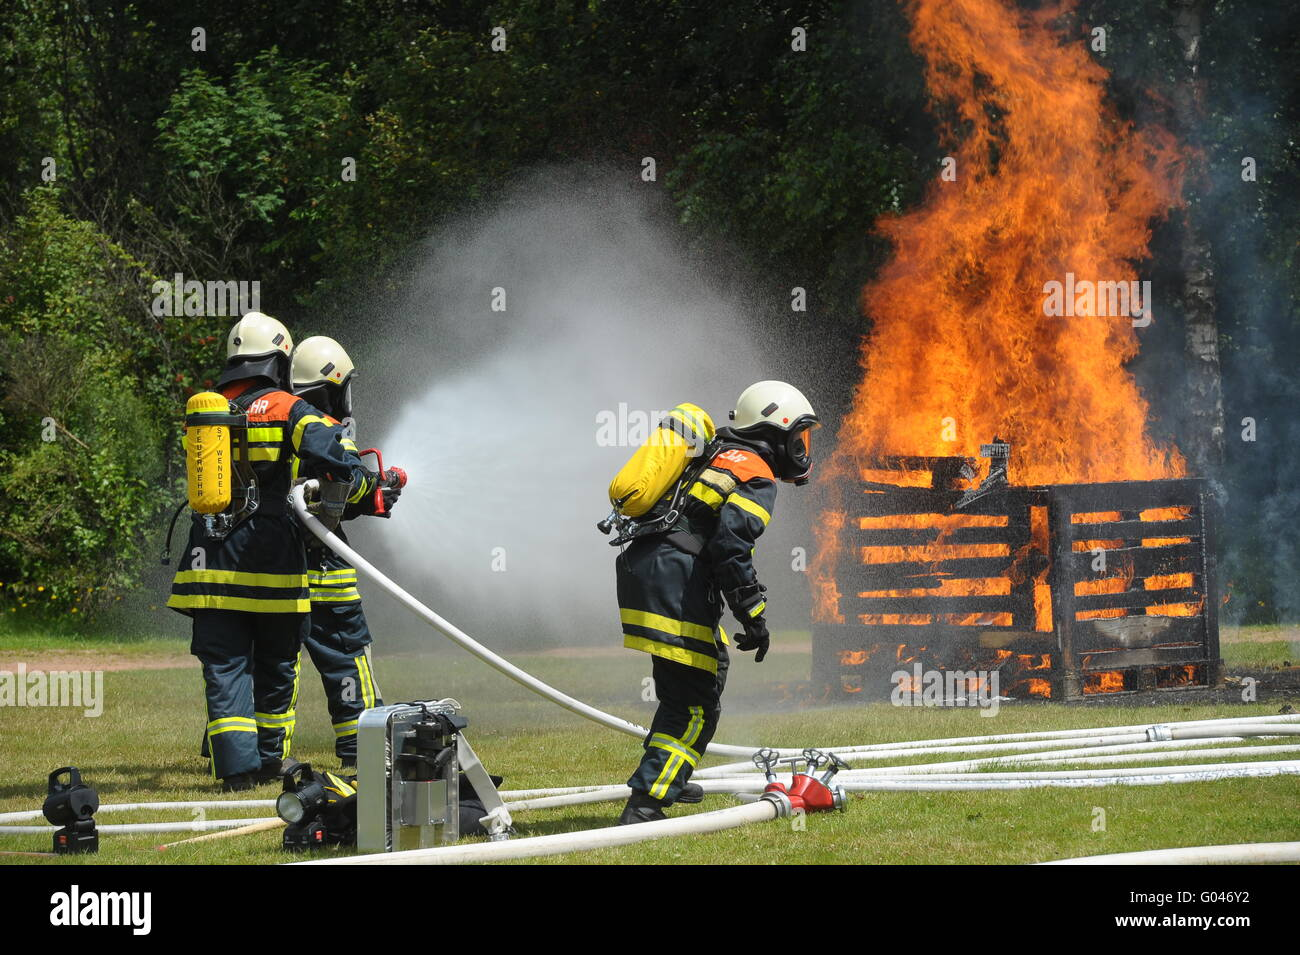 Fire Drill - Stock Image